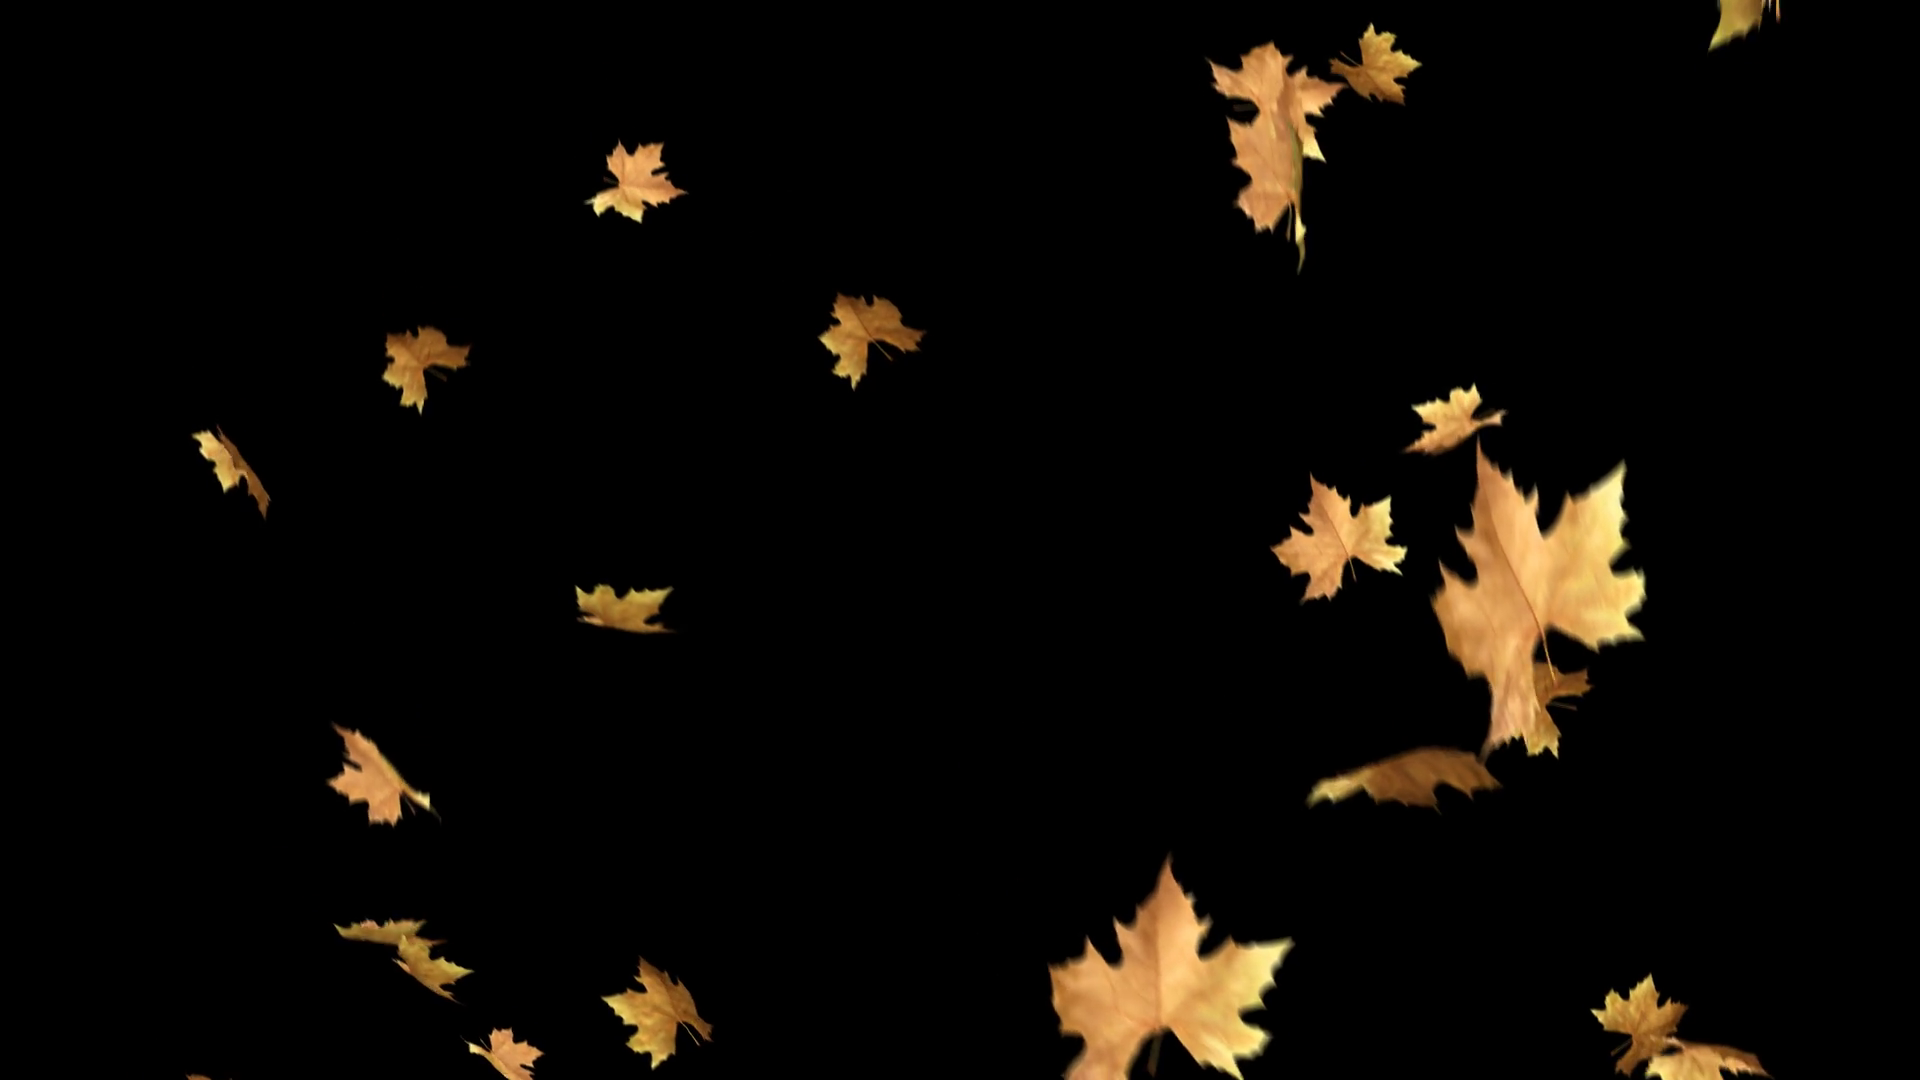 Autumn Leaves Falling With Alpha Channel Loop. You can use this clip for  background or overlays on your image and video project. Motion Background.